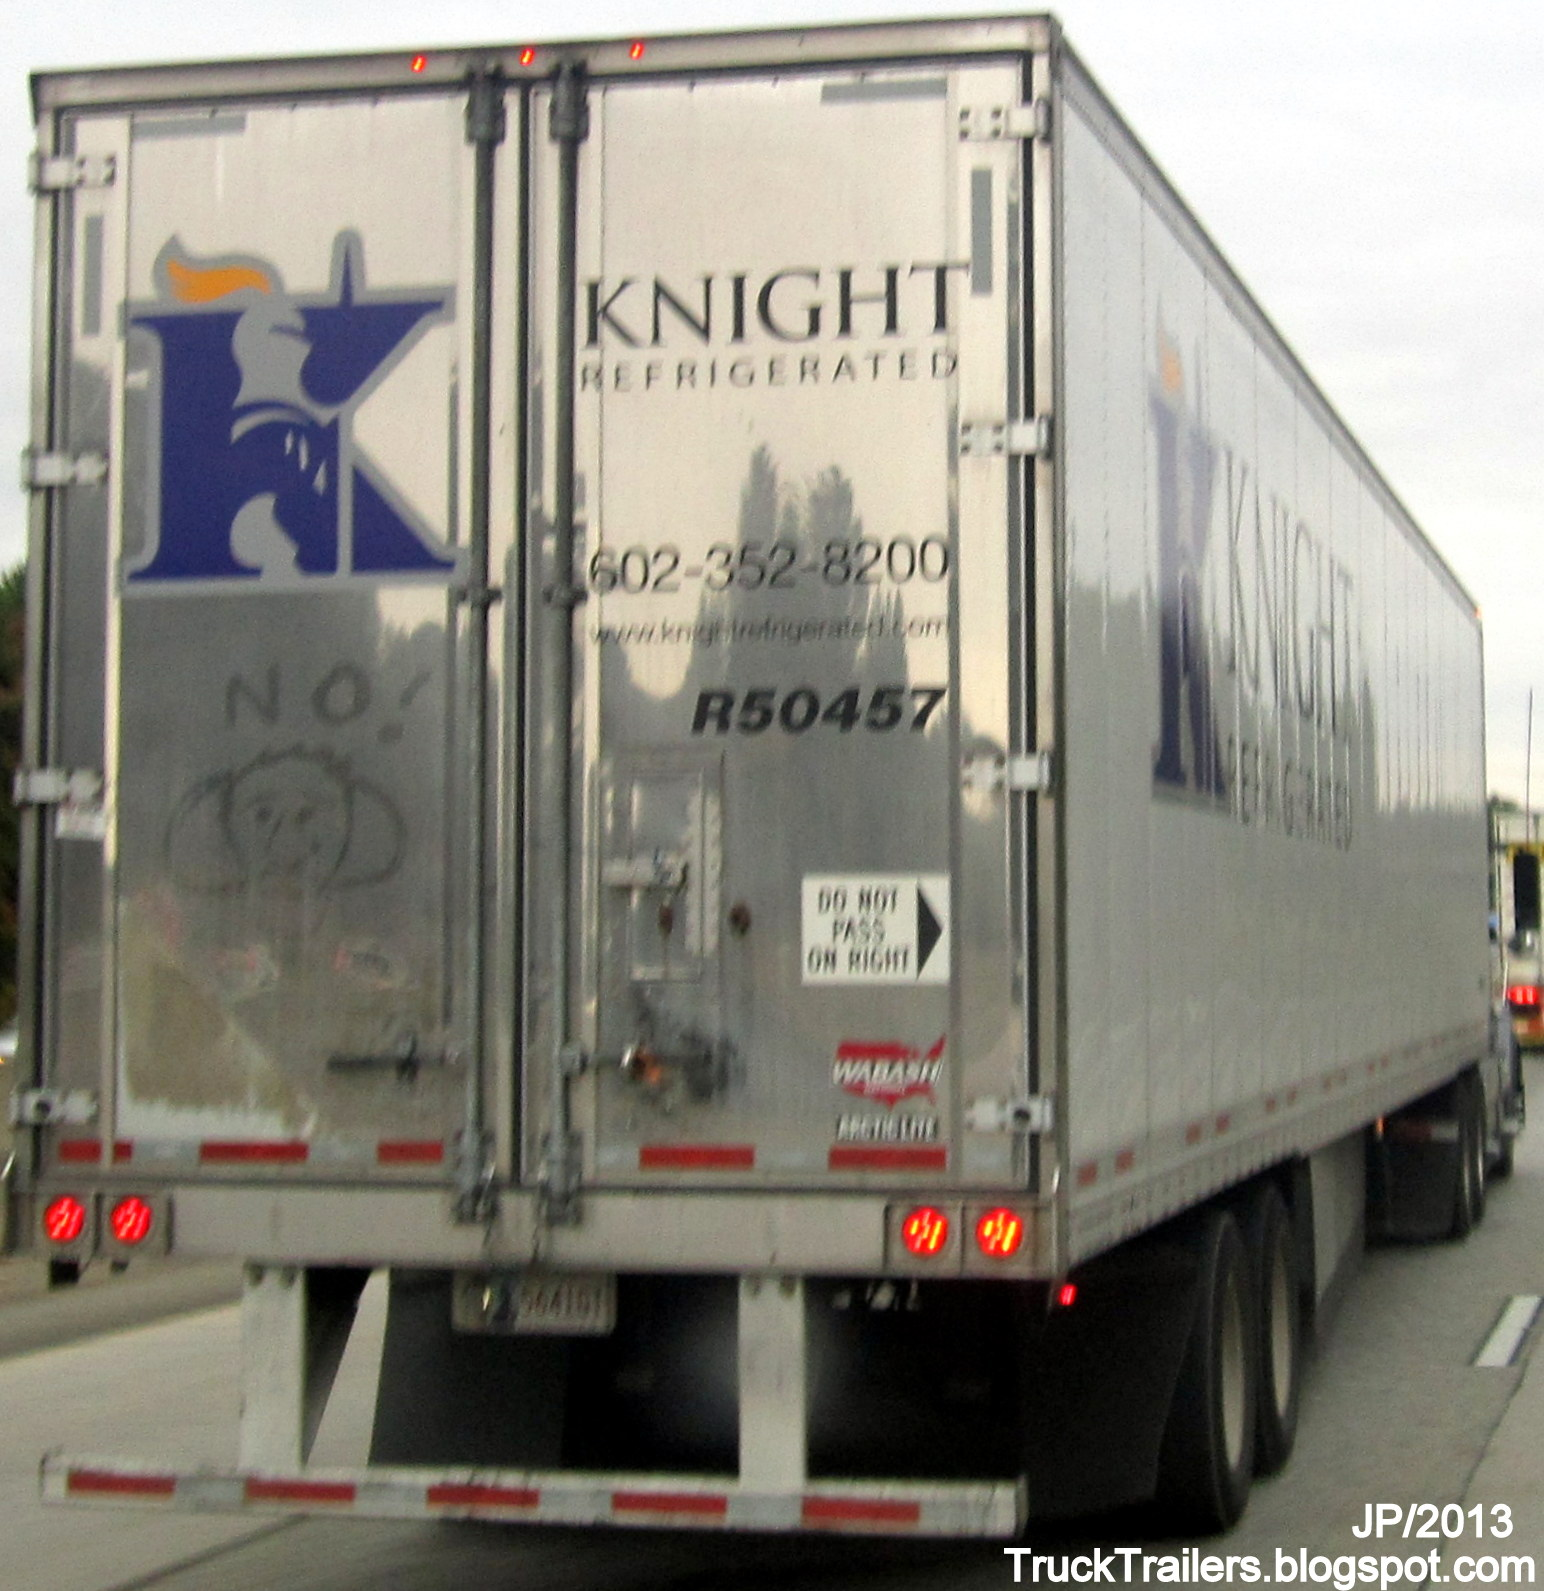 Knight refrigerated wabash trailer artic lite knight refrigerated trucking company memphis division cold food olive branch ms